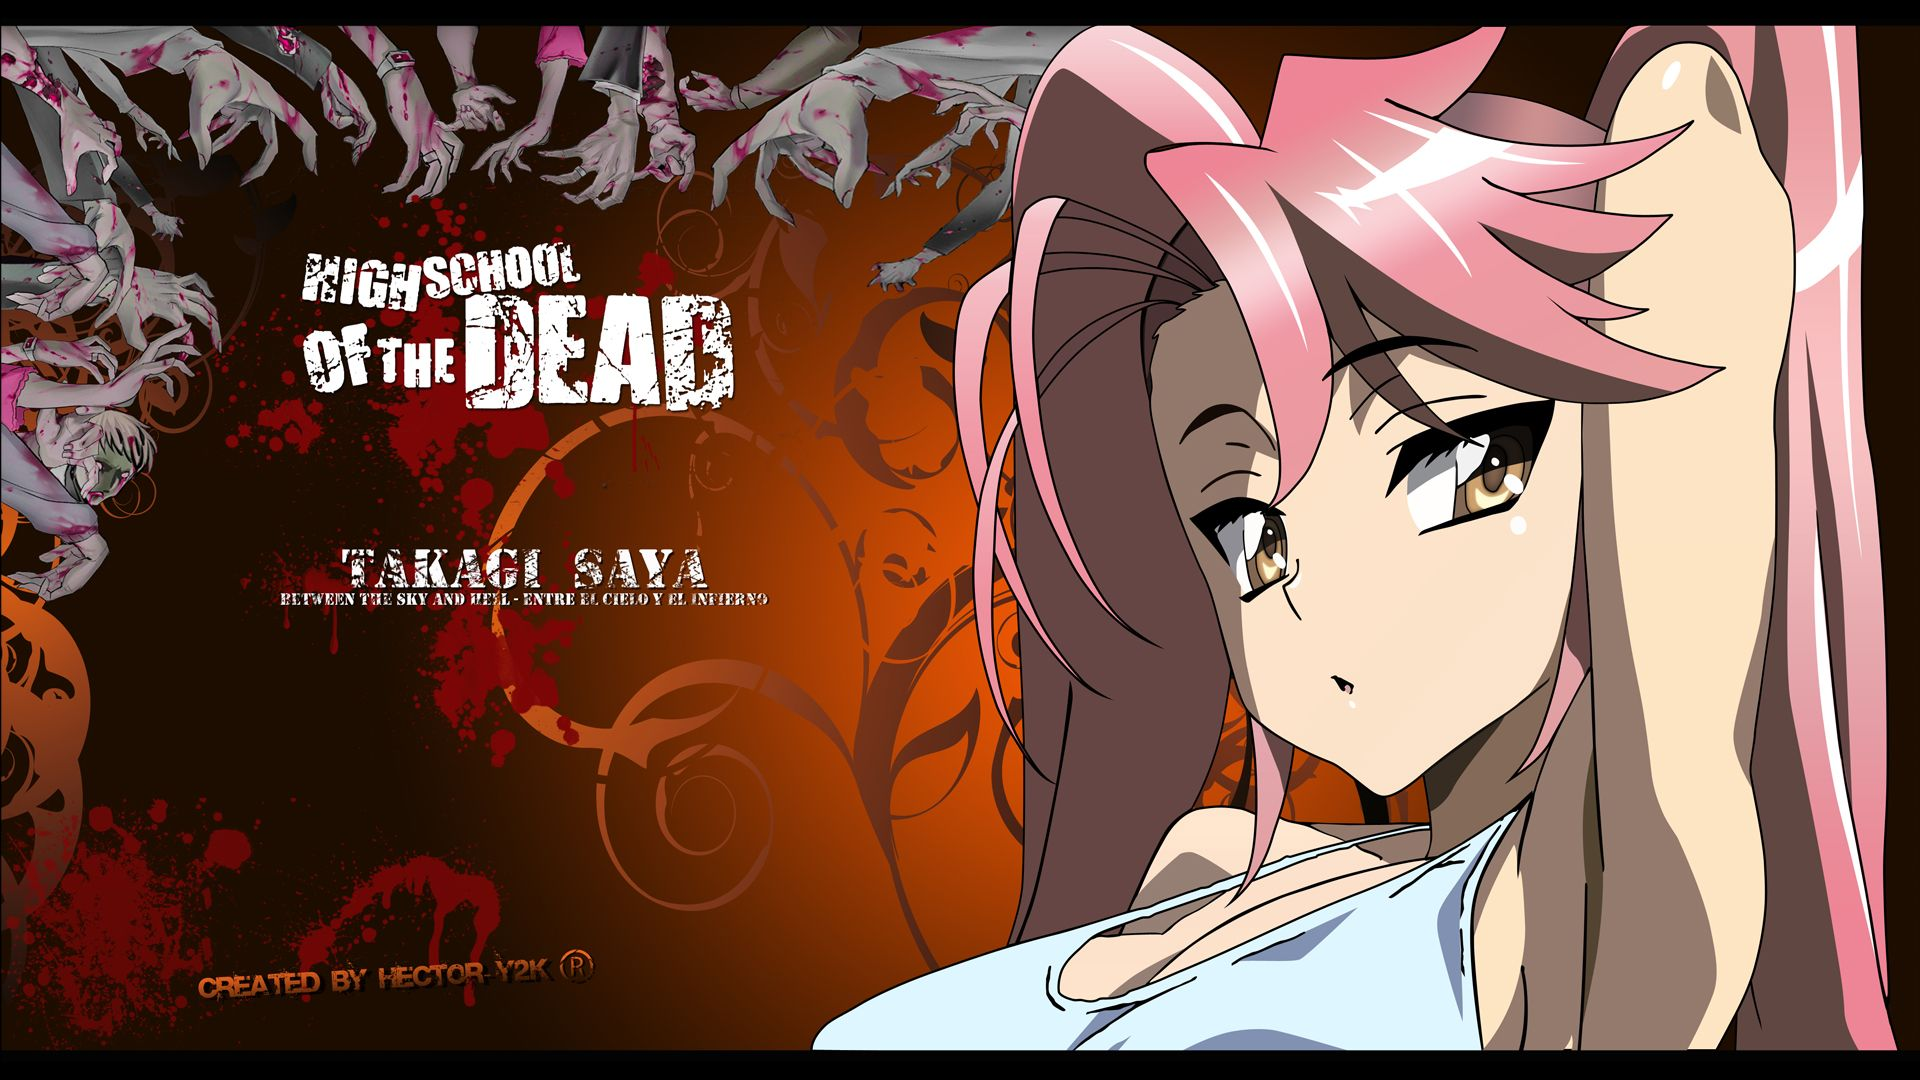 º Hotd º Highschool Of The Dead